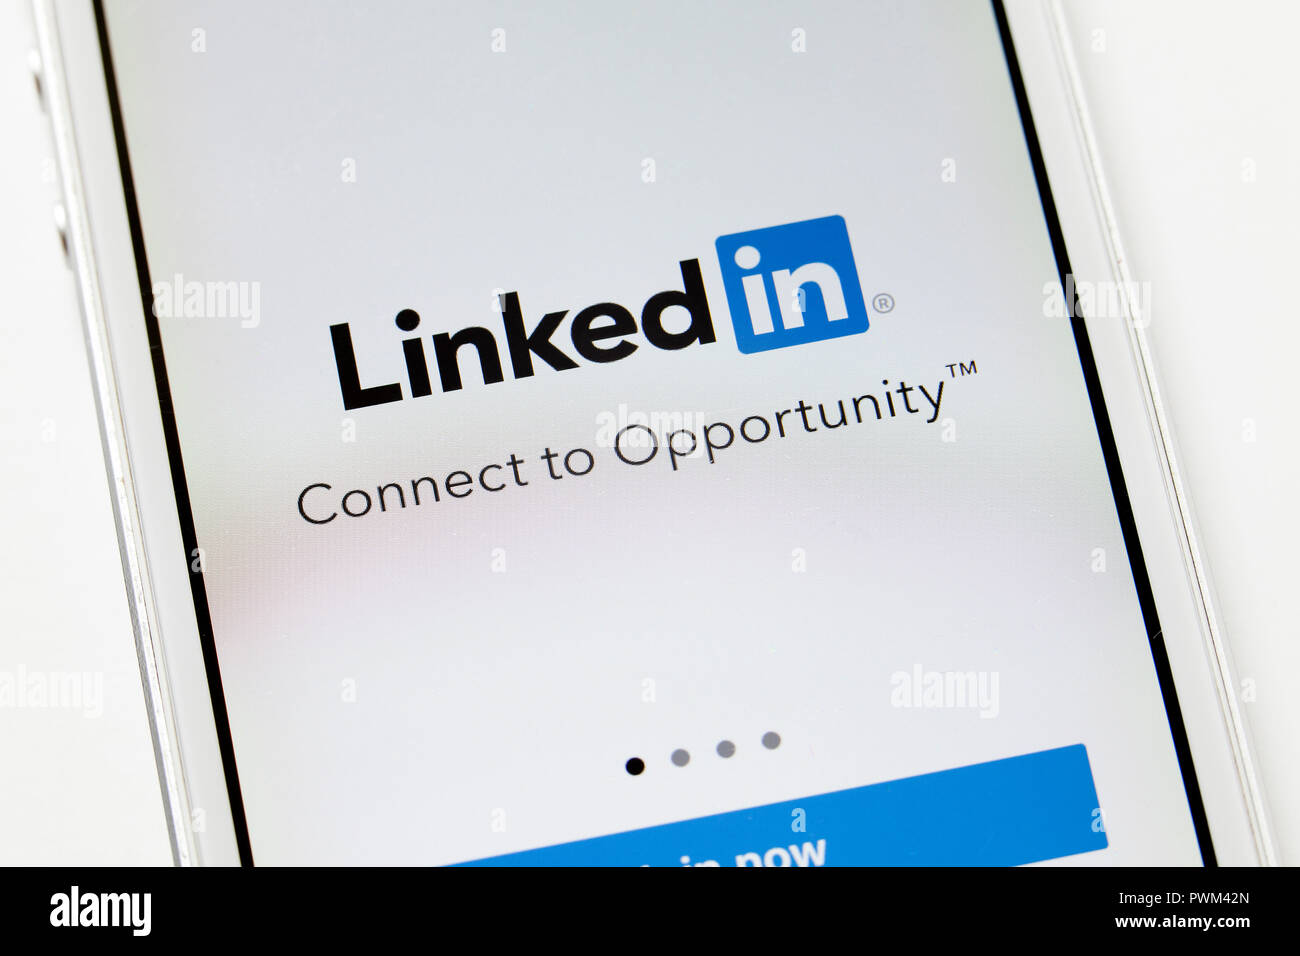 LinkedIn (Linked In) app on iPhone (close up)- USA - Stock Image